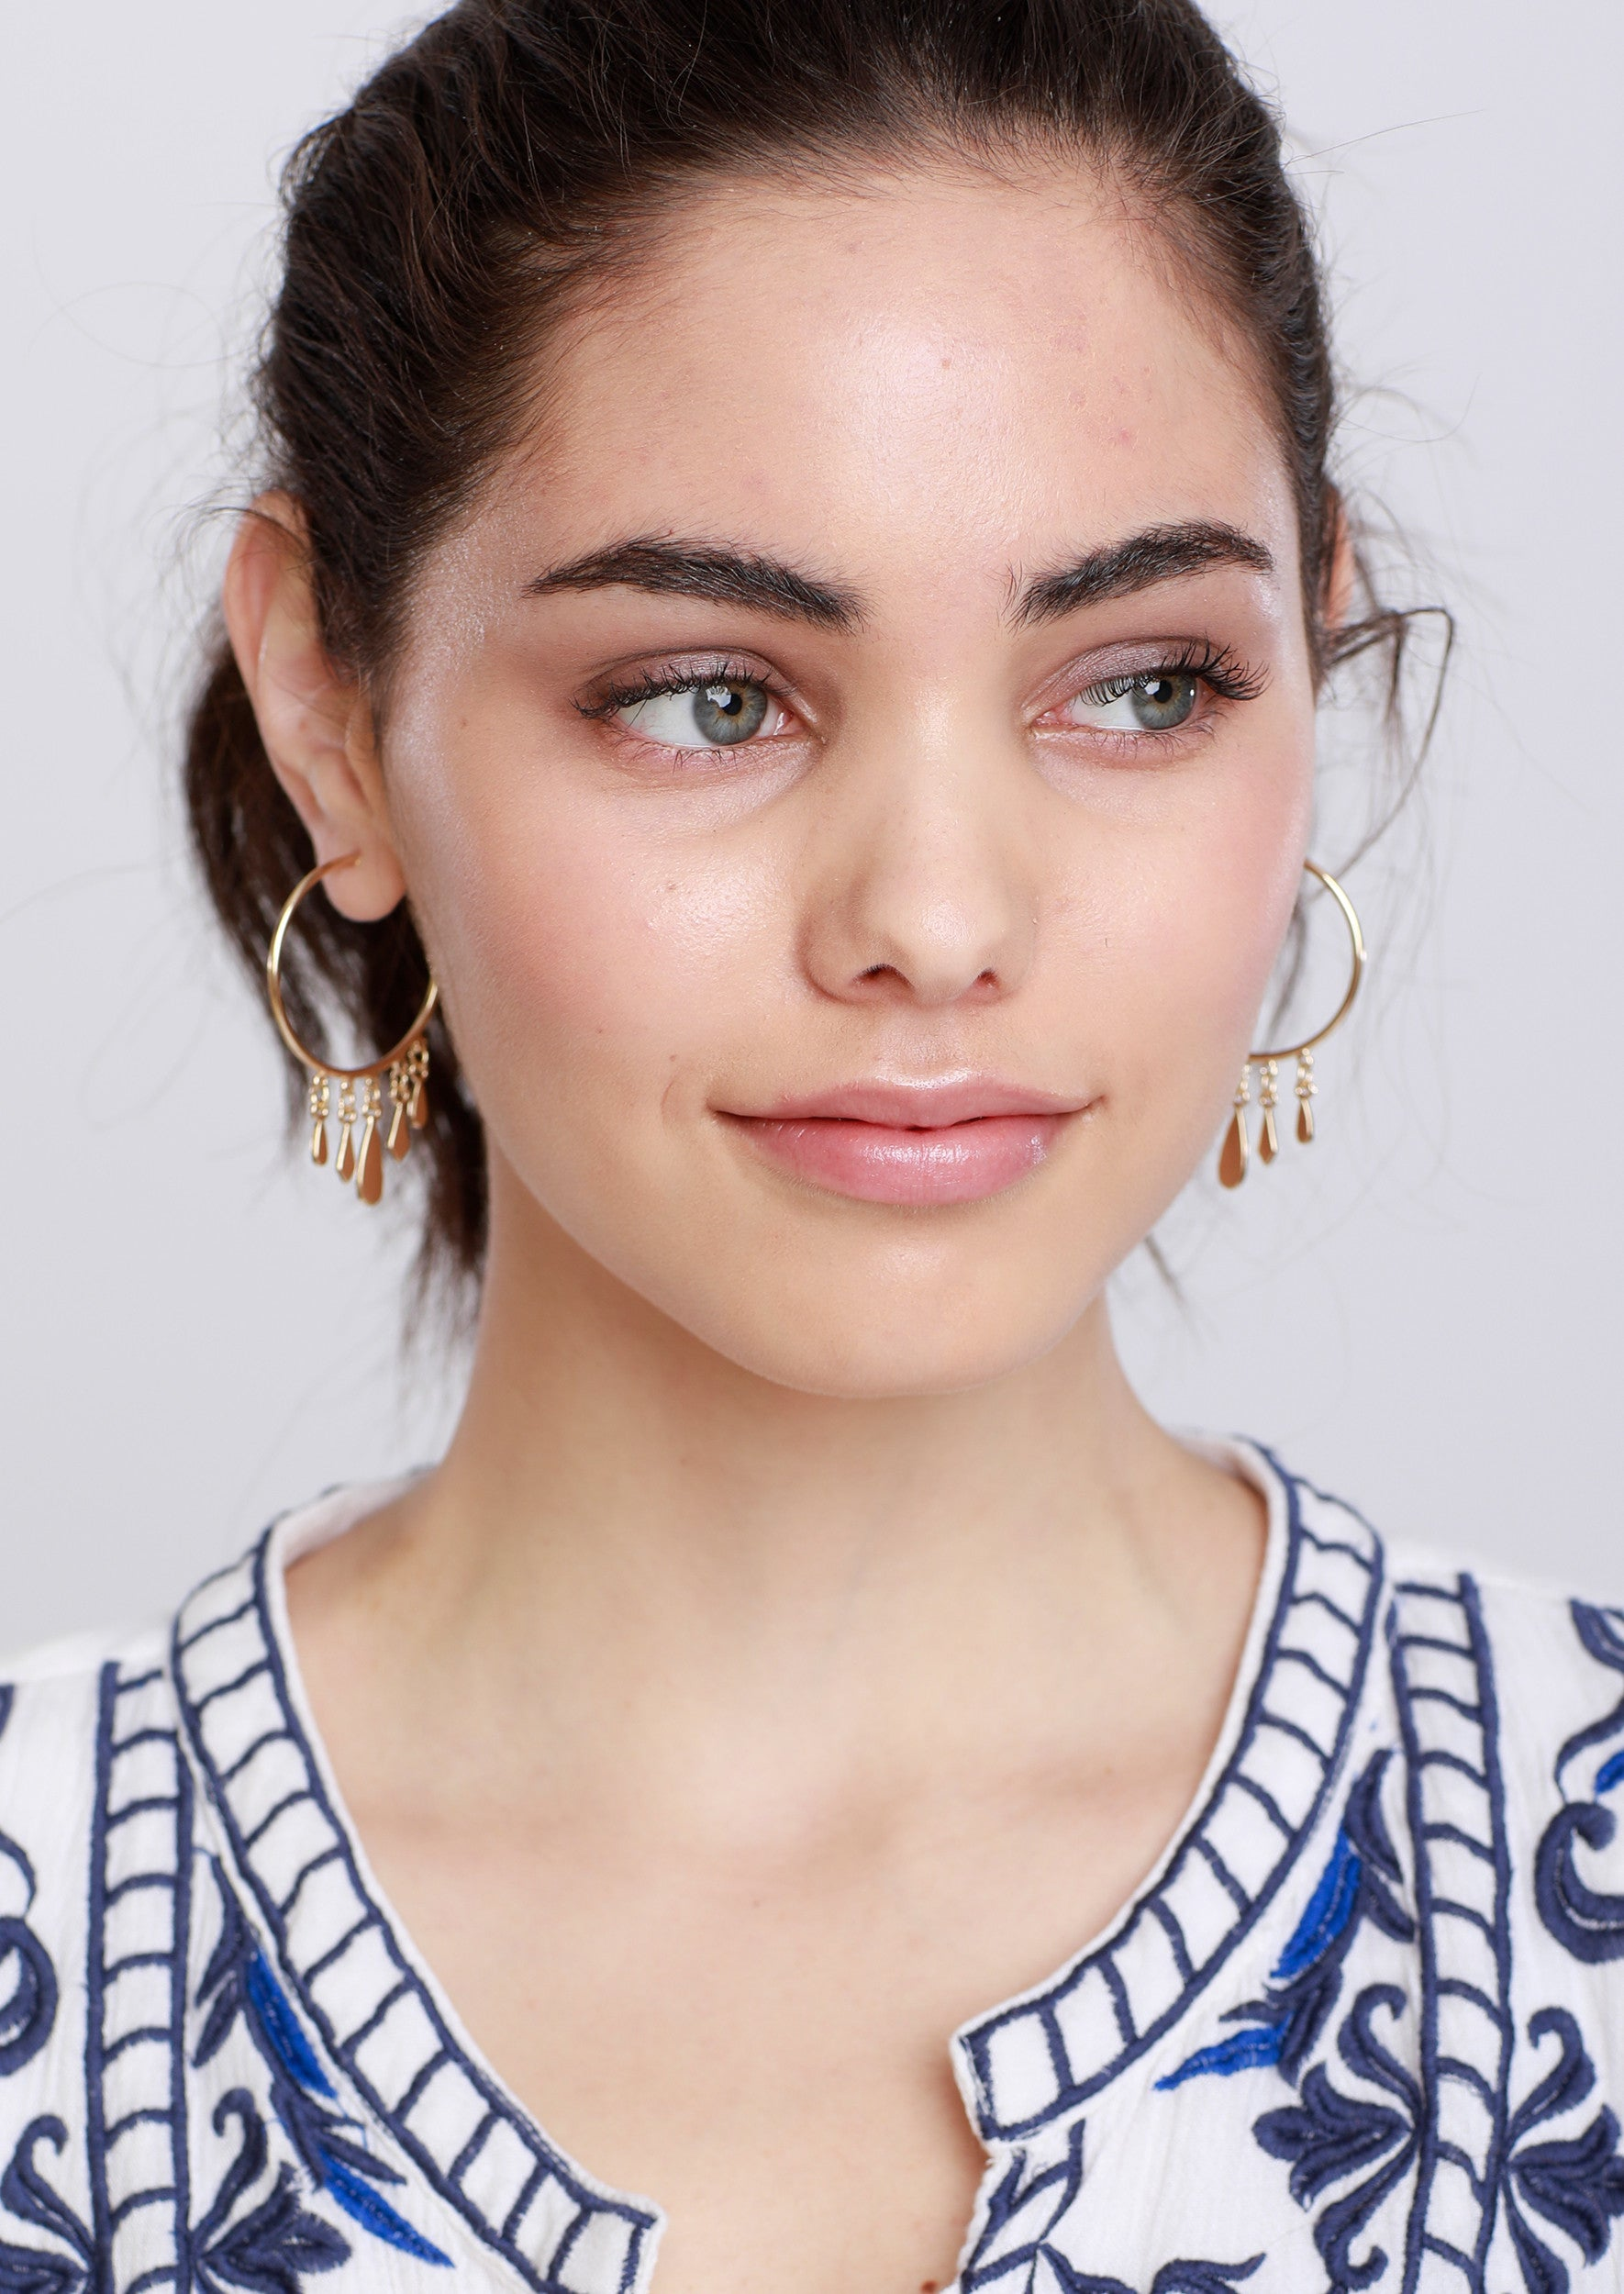 Jules Smith 14K Gold Plated Hoop Earrings with Dangling Charms